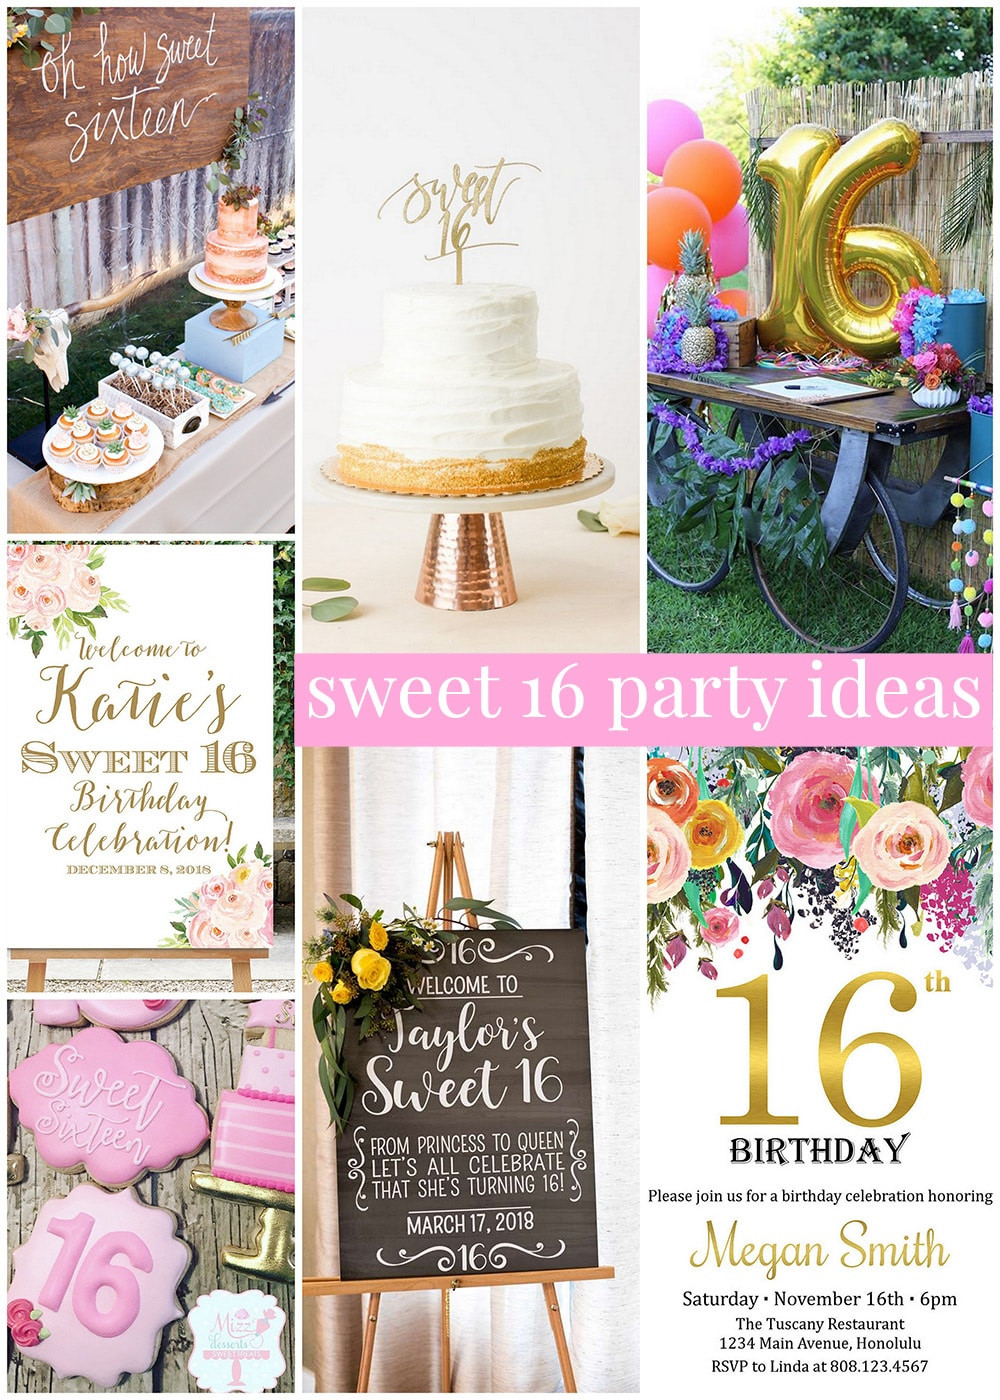 Best ideas about Sweet 16 Birthday Party . Save or Pin Sweet 16 Party Ideas Now.